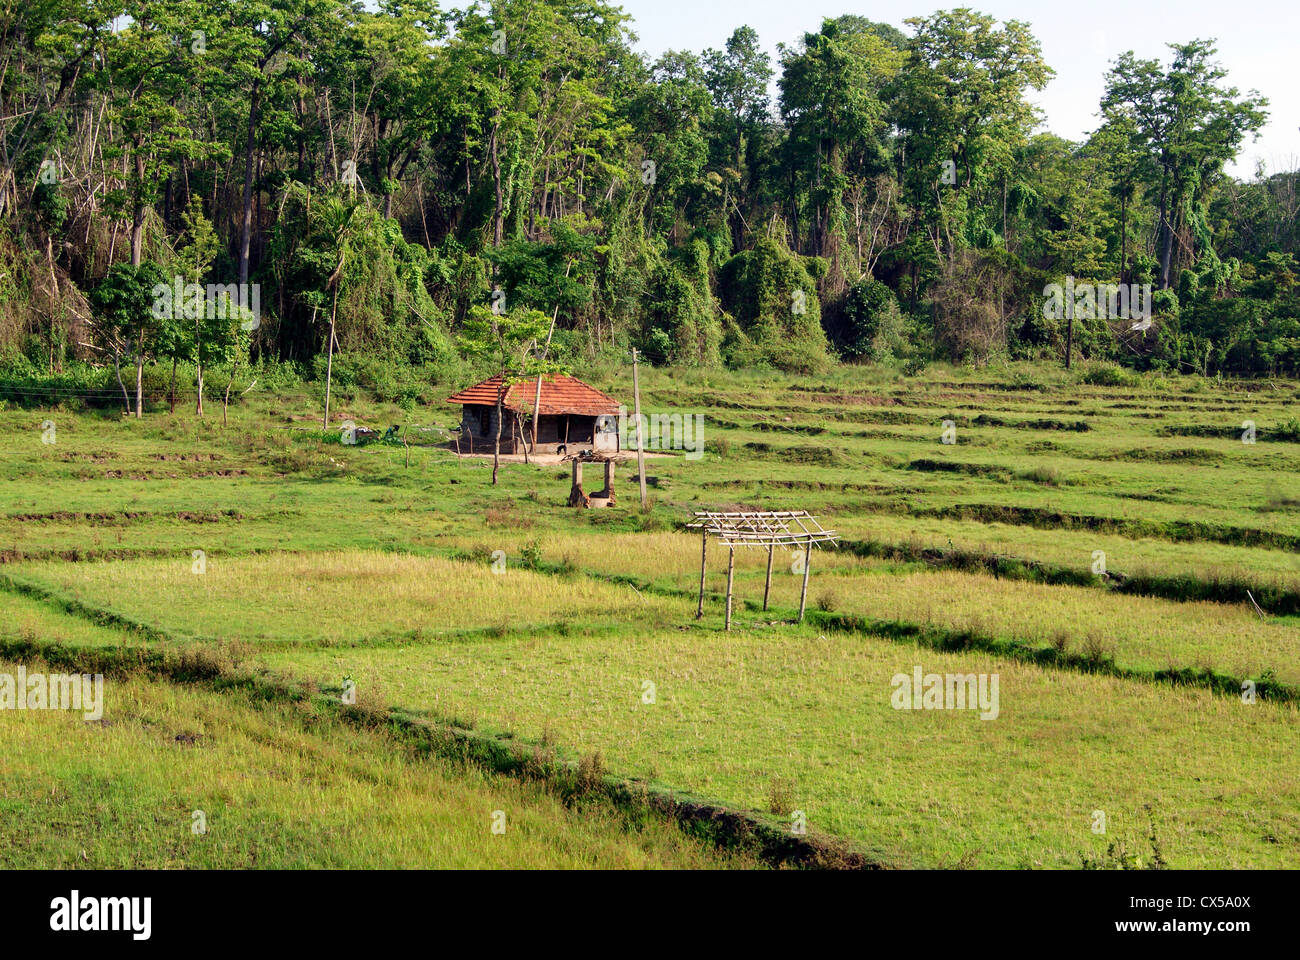 small hut homes of tribal farmer in the middle of rice paddy stock